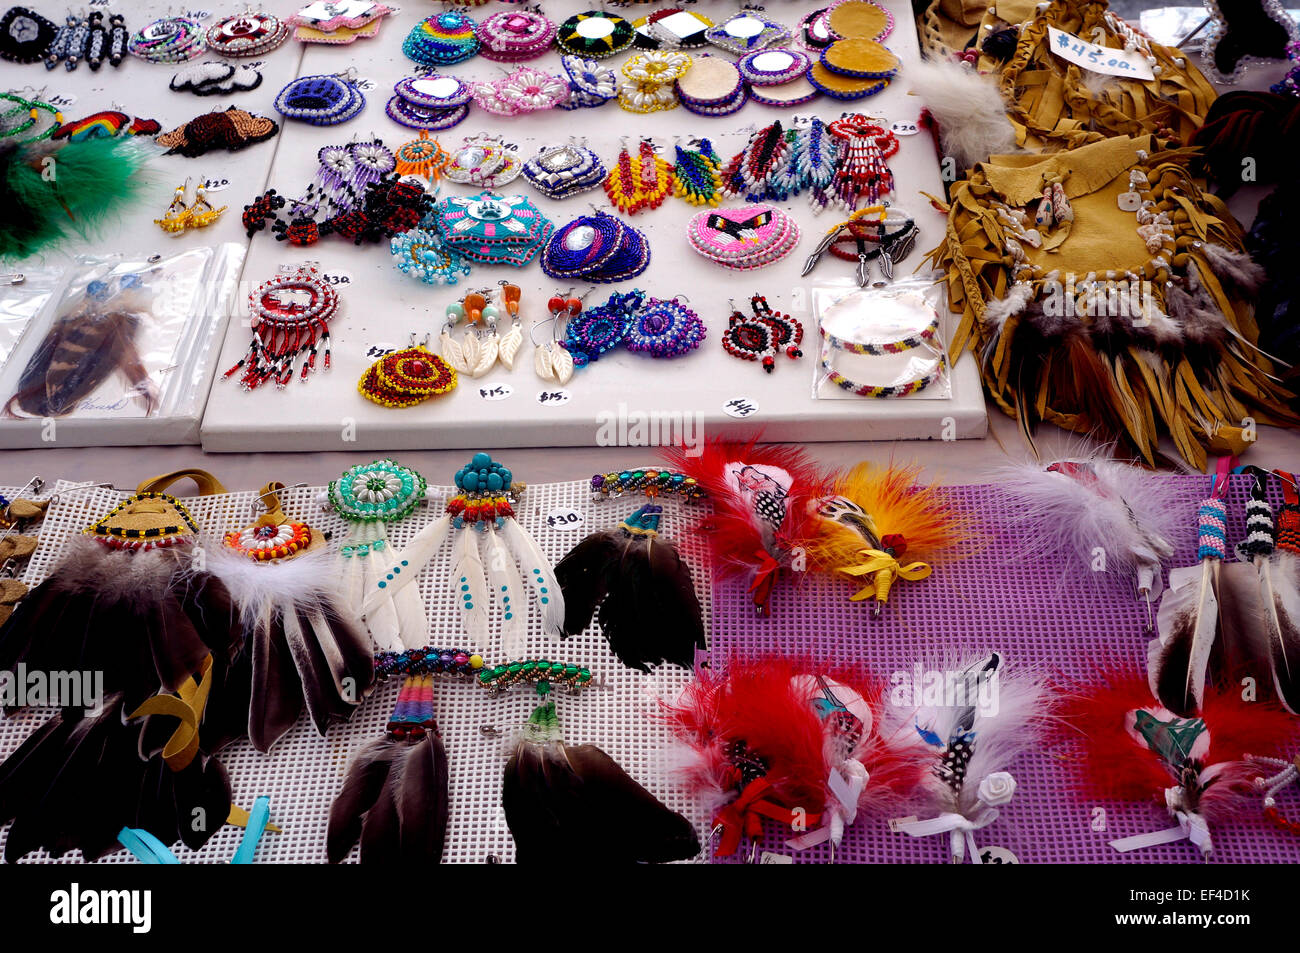 Canadian First Nations jewelry and other handicrafts for sale in Vancouver, BC, Canada - Stock Image